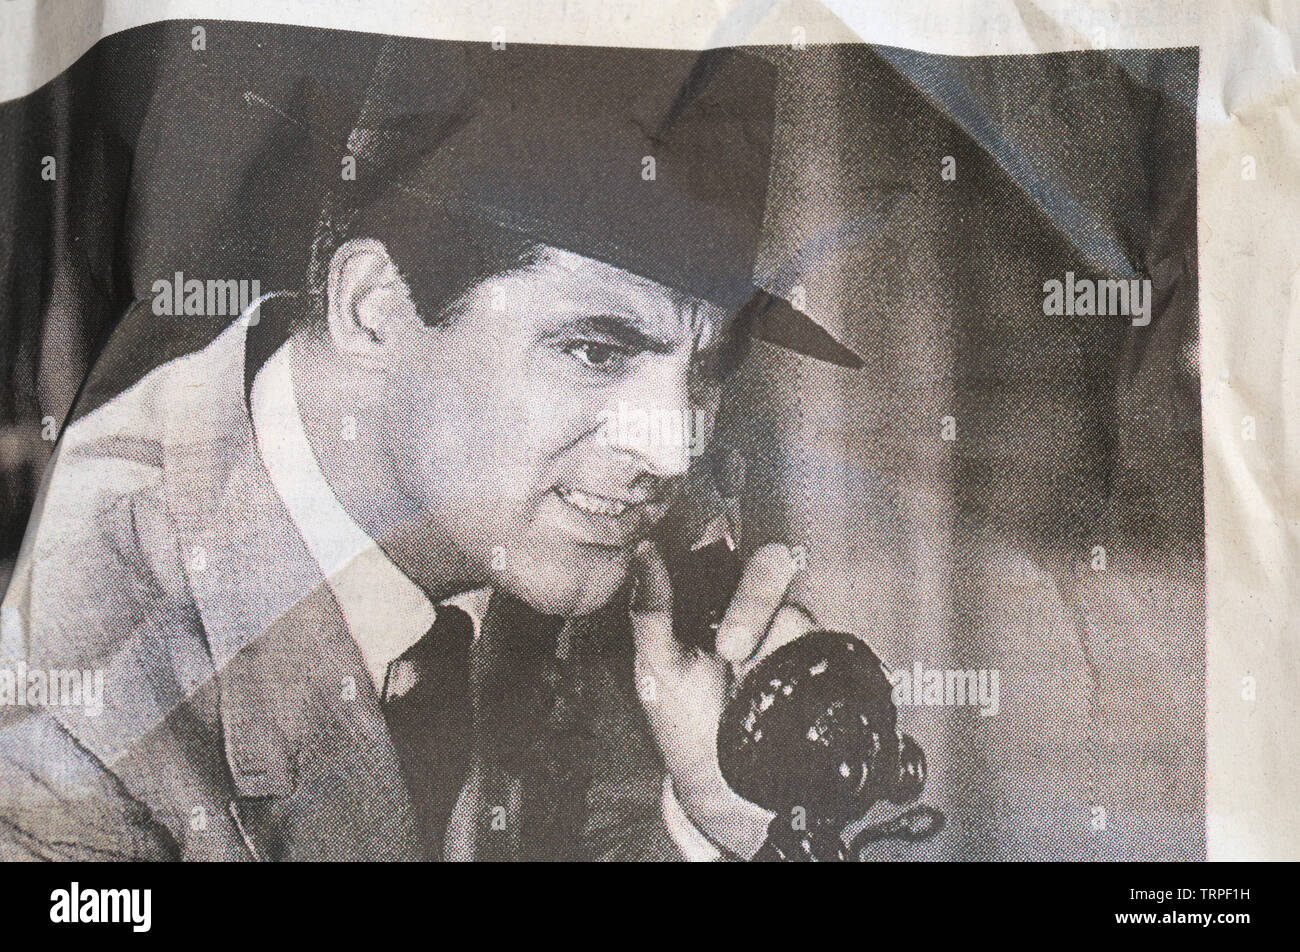 Cary Grant in 'His girl friday' in a crumpled newspaper print - Stock Image